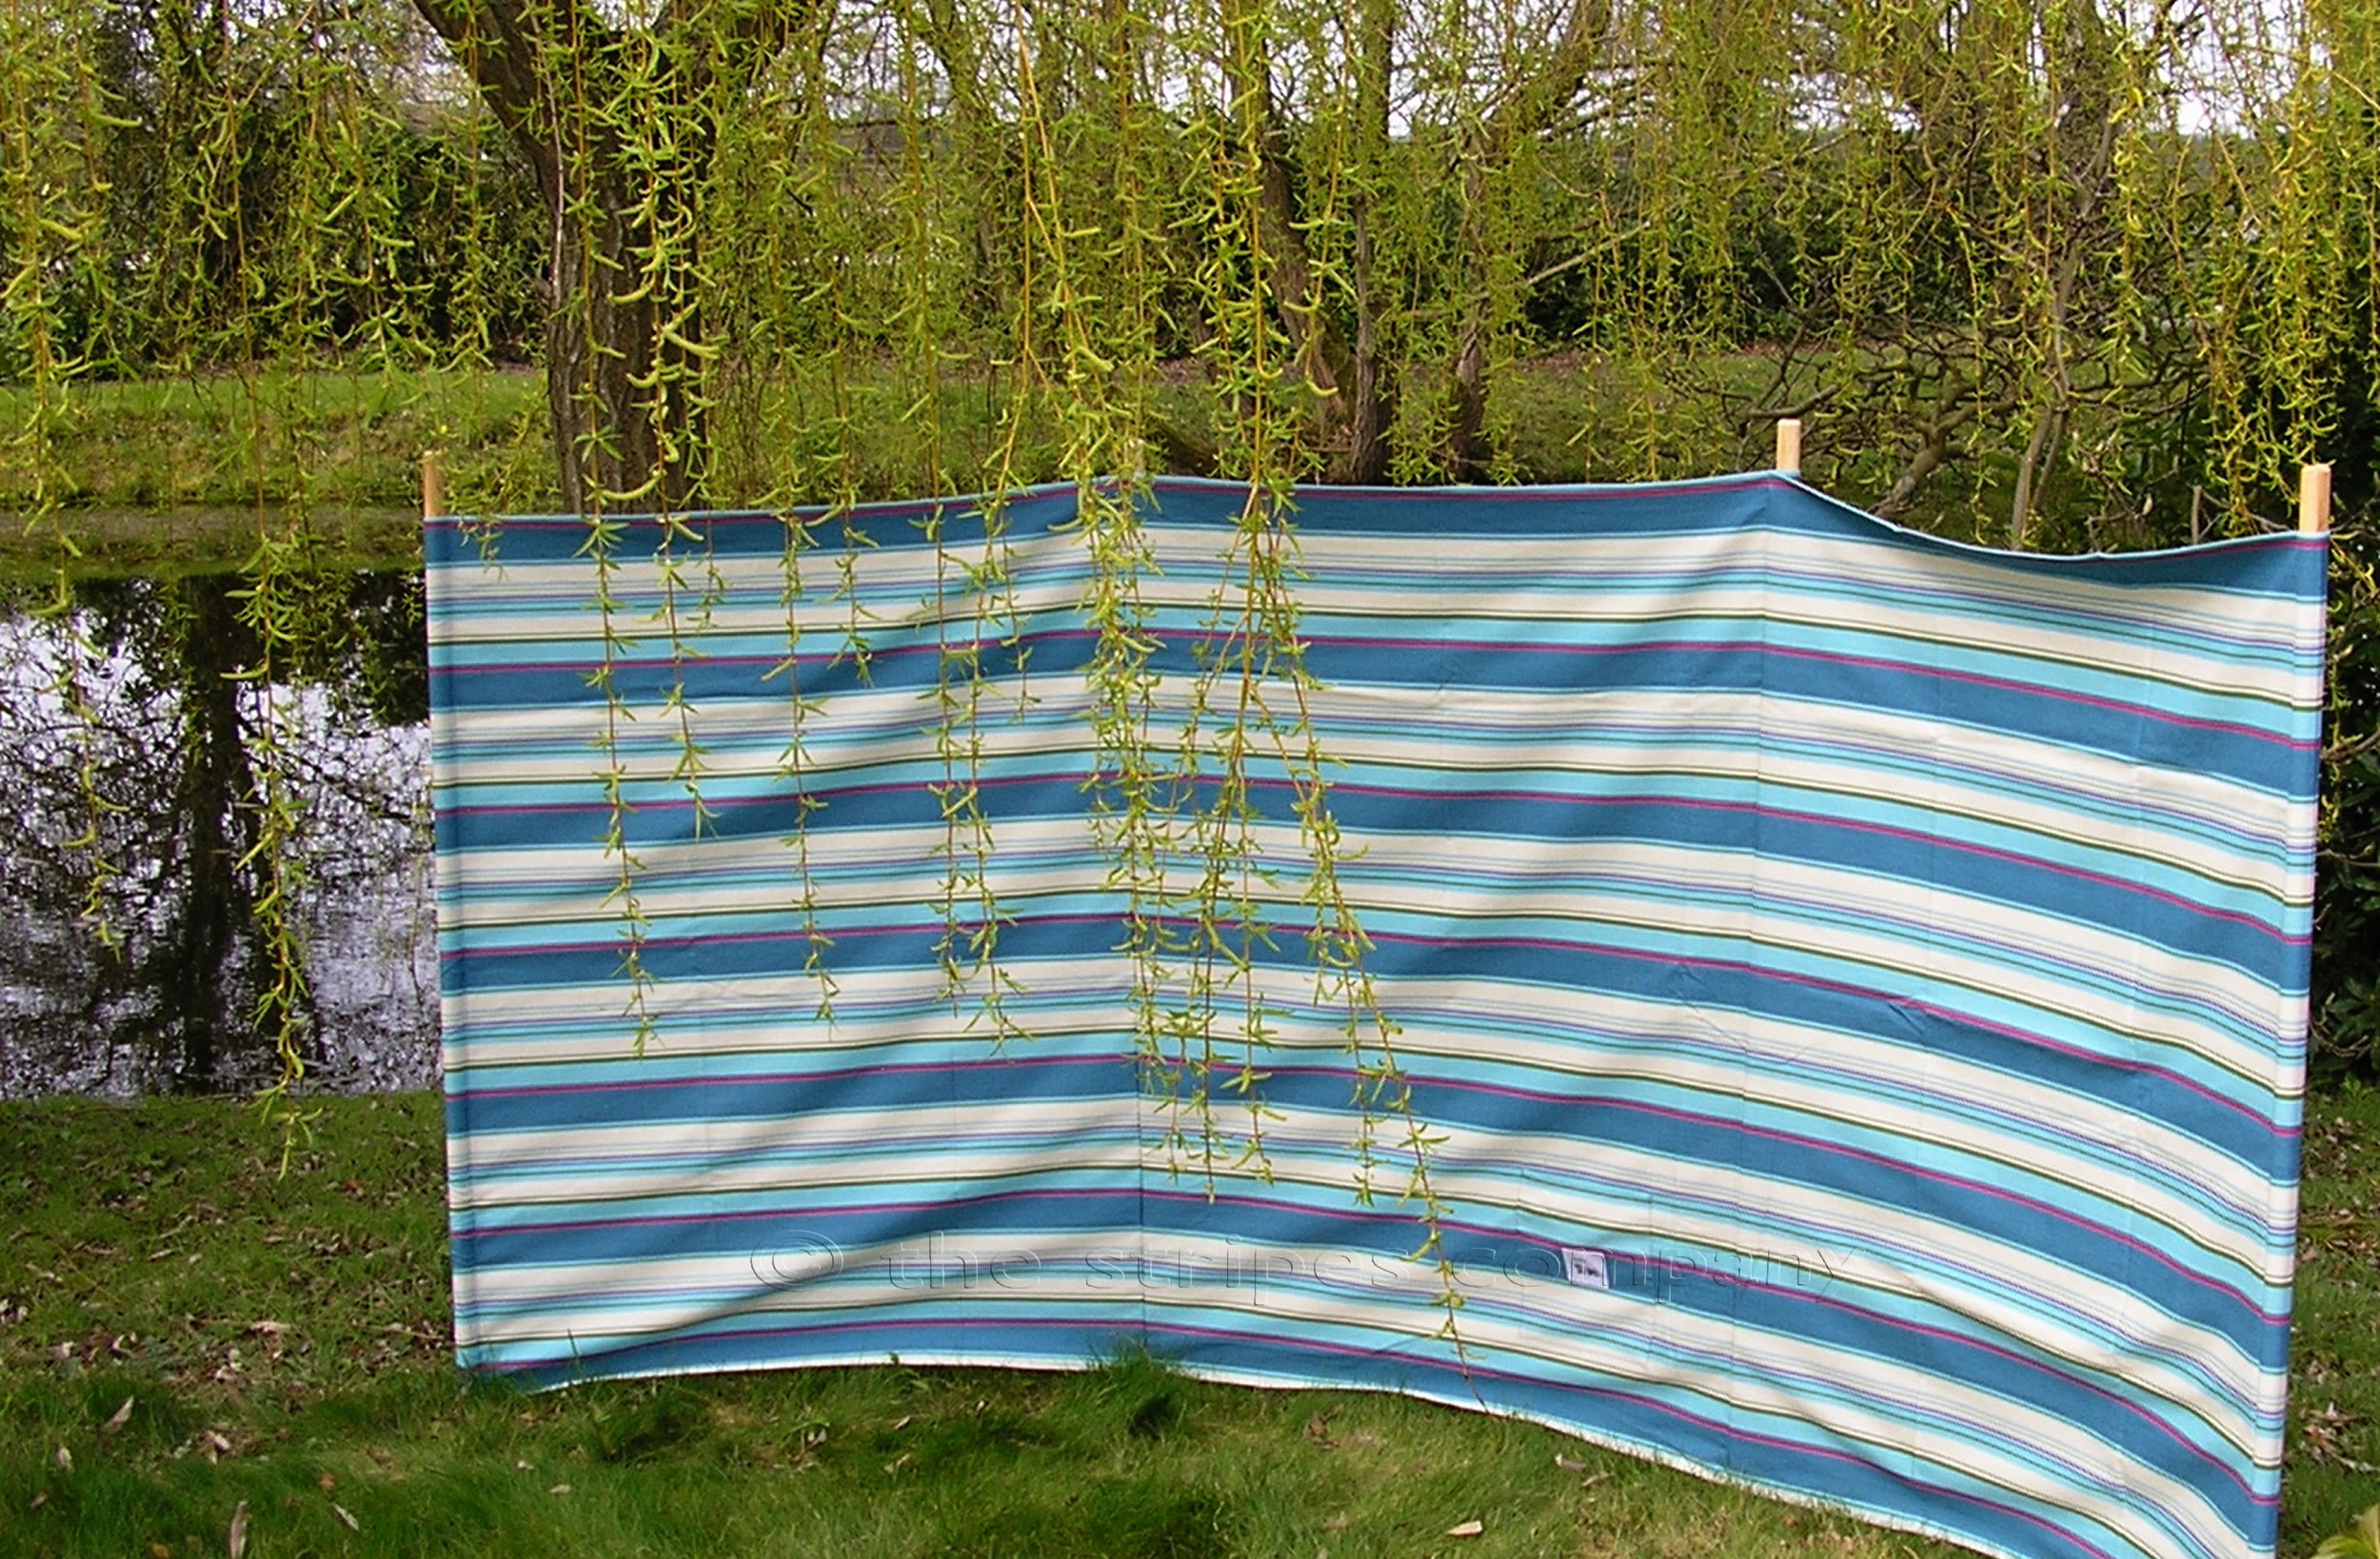 Petrol Blue Striped Windbreaks with 4 poles  Petrol Blue  Pale Blue  Cream  Stripes